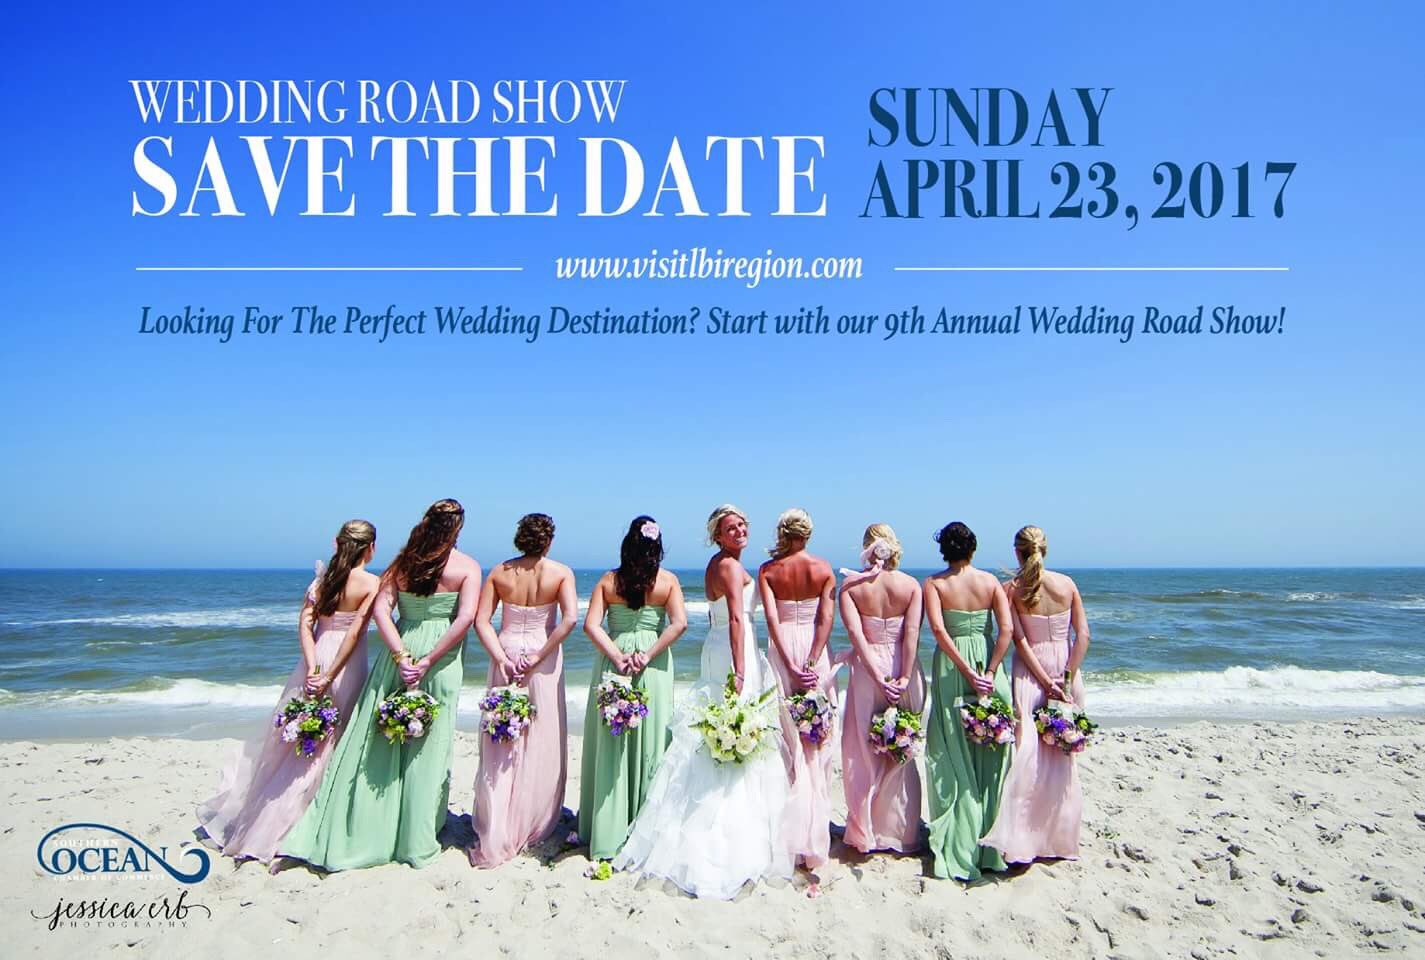 LBI Wedding Road Show